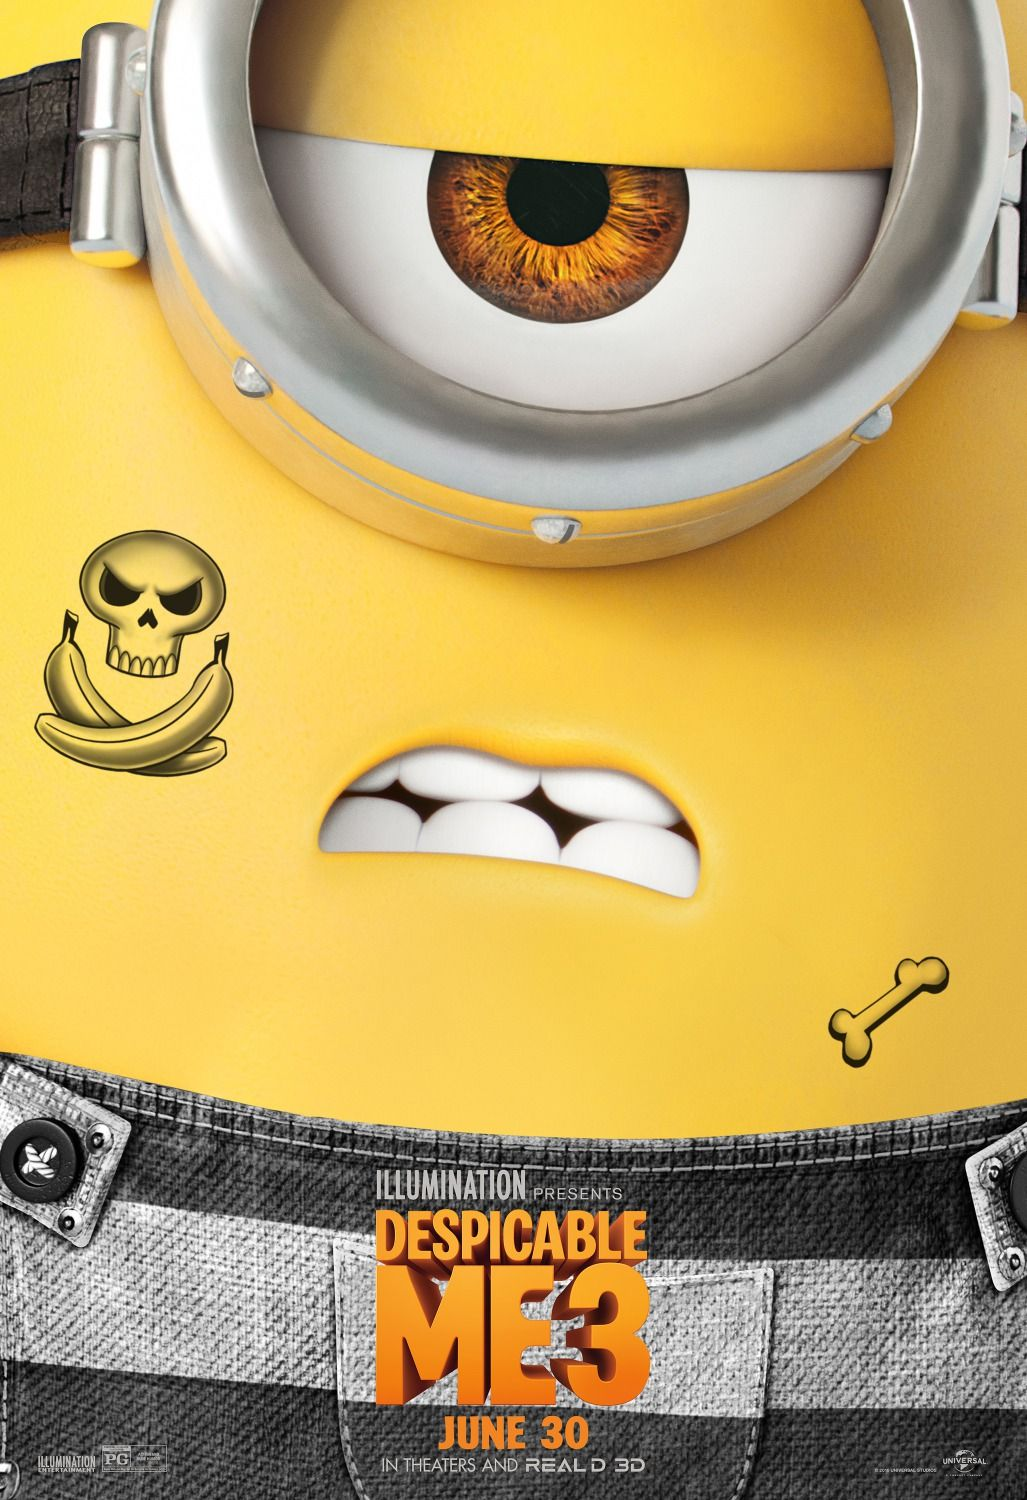 Despicable Me 3 Movie Poster 6 Despicable Me 3 Despicable Me Minions